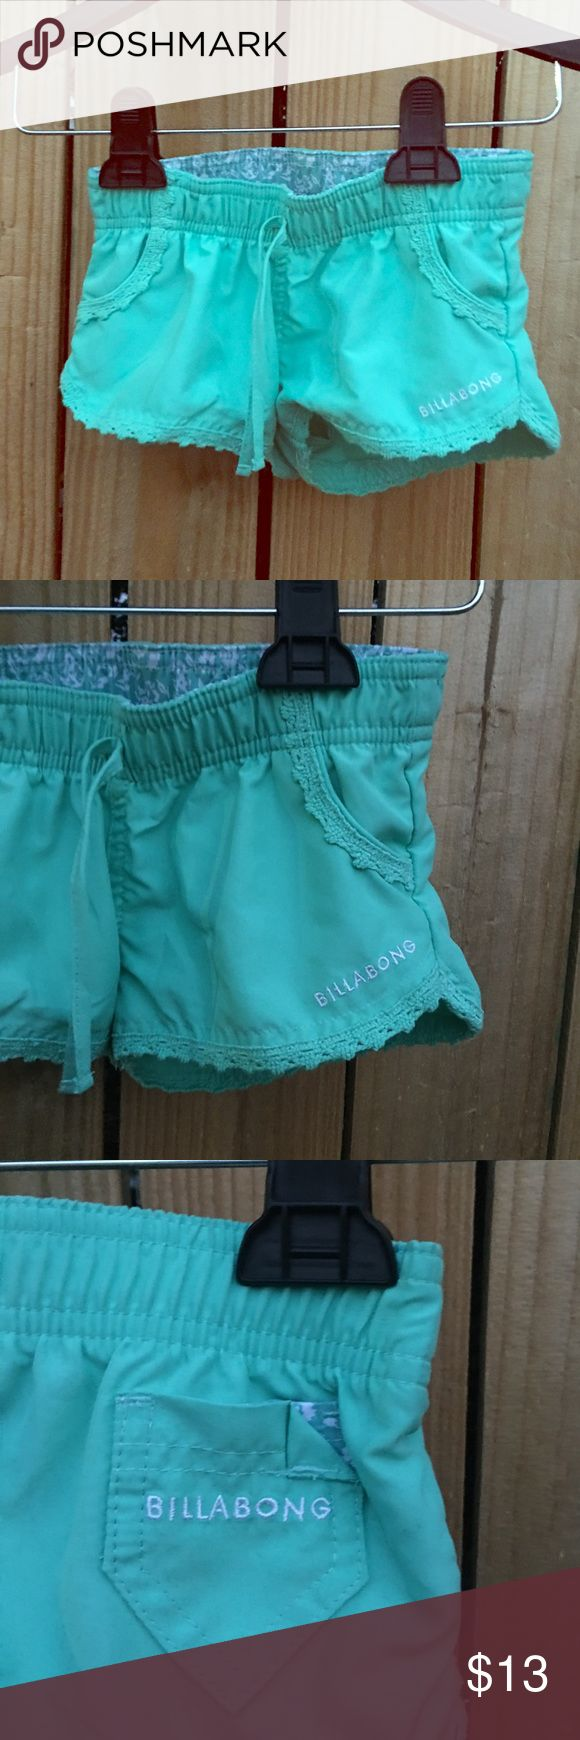 Billabong girls shorts sz: 5 Super cute, Billabong girls blue/green summer shorts sz: 5. Worn twice, like new condition with no flaws 💖 Billabong Bottoms Shorts